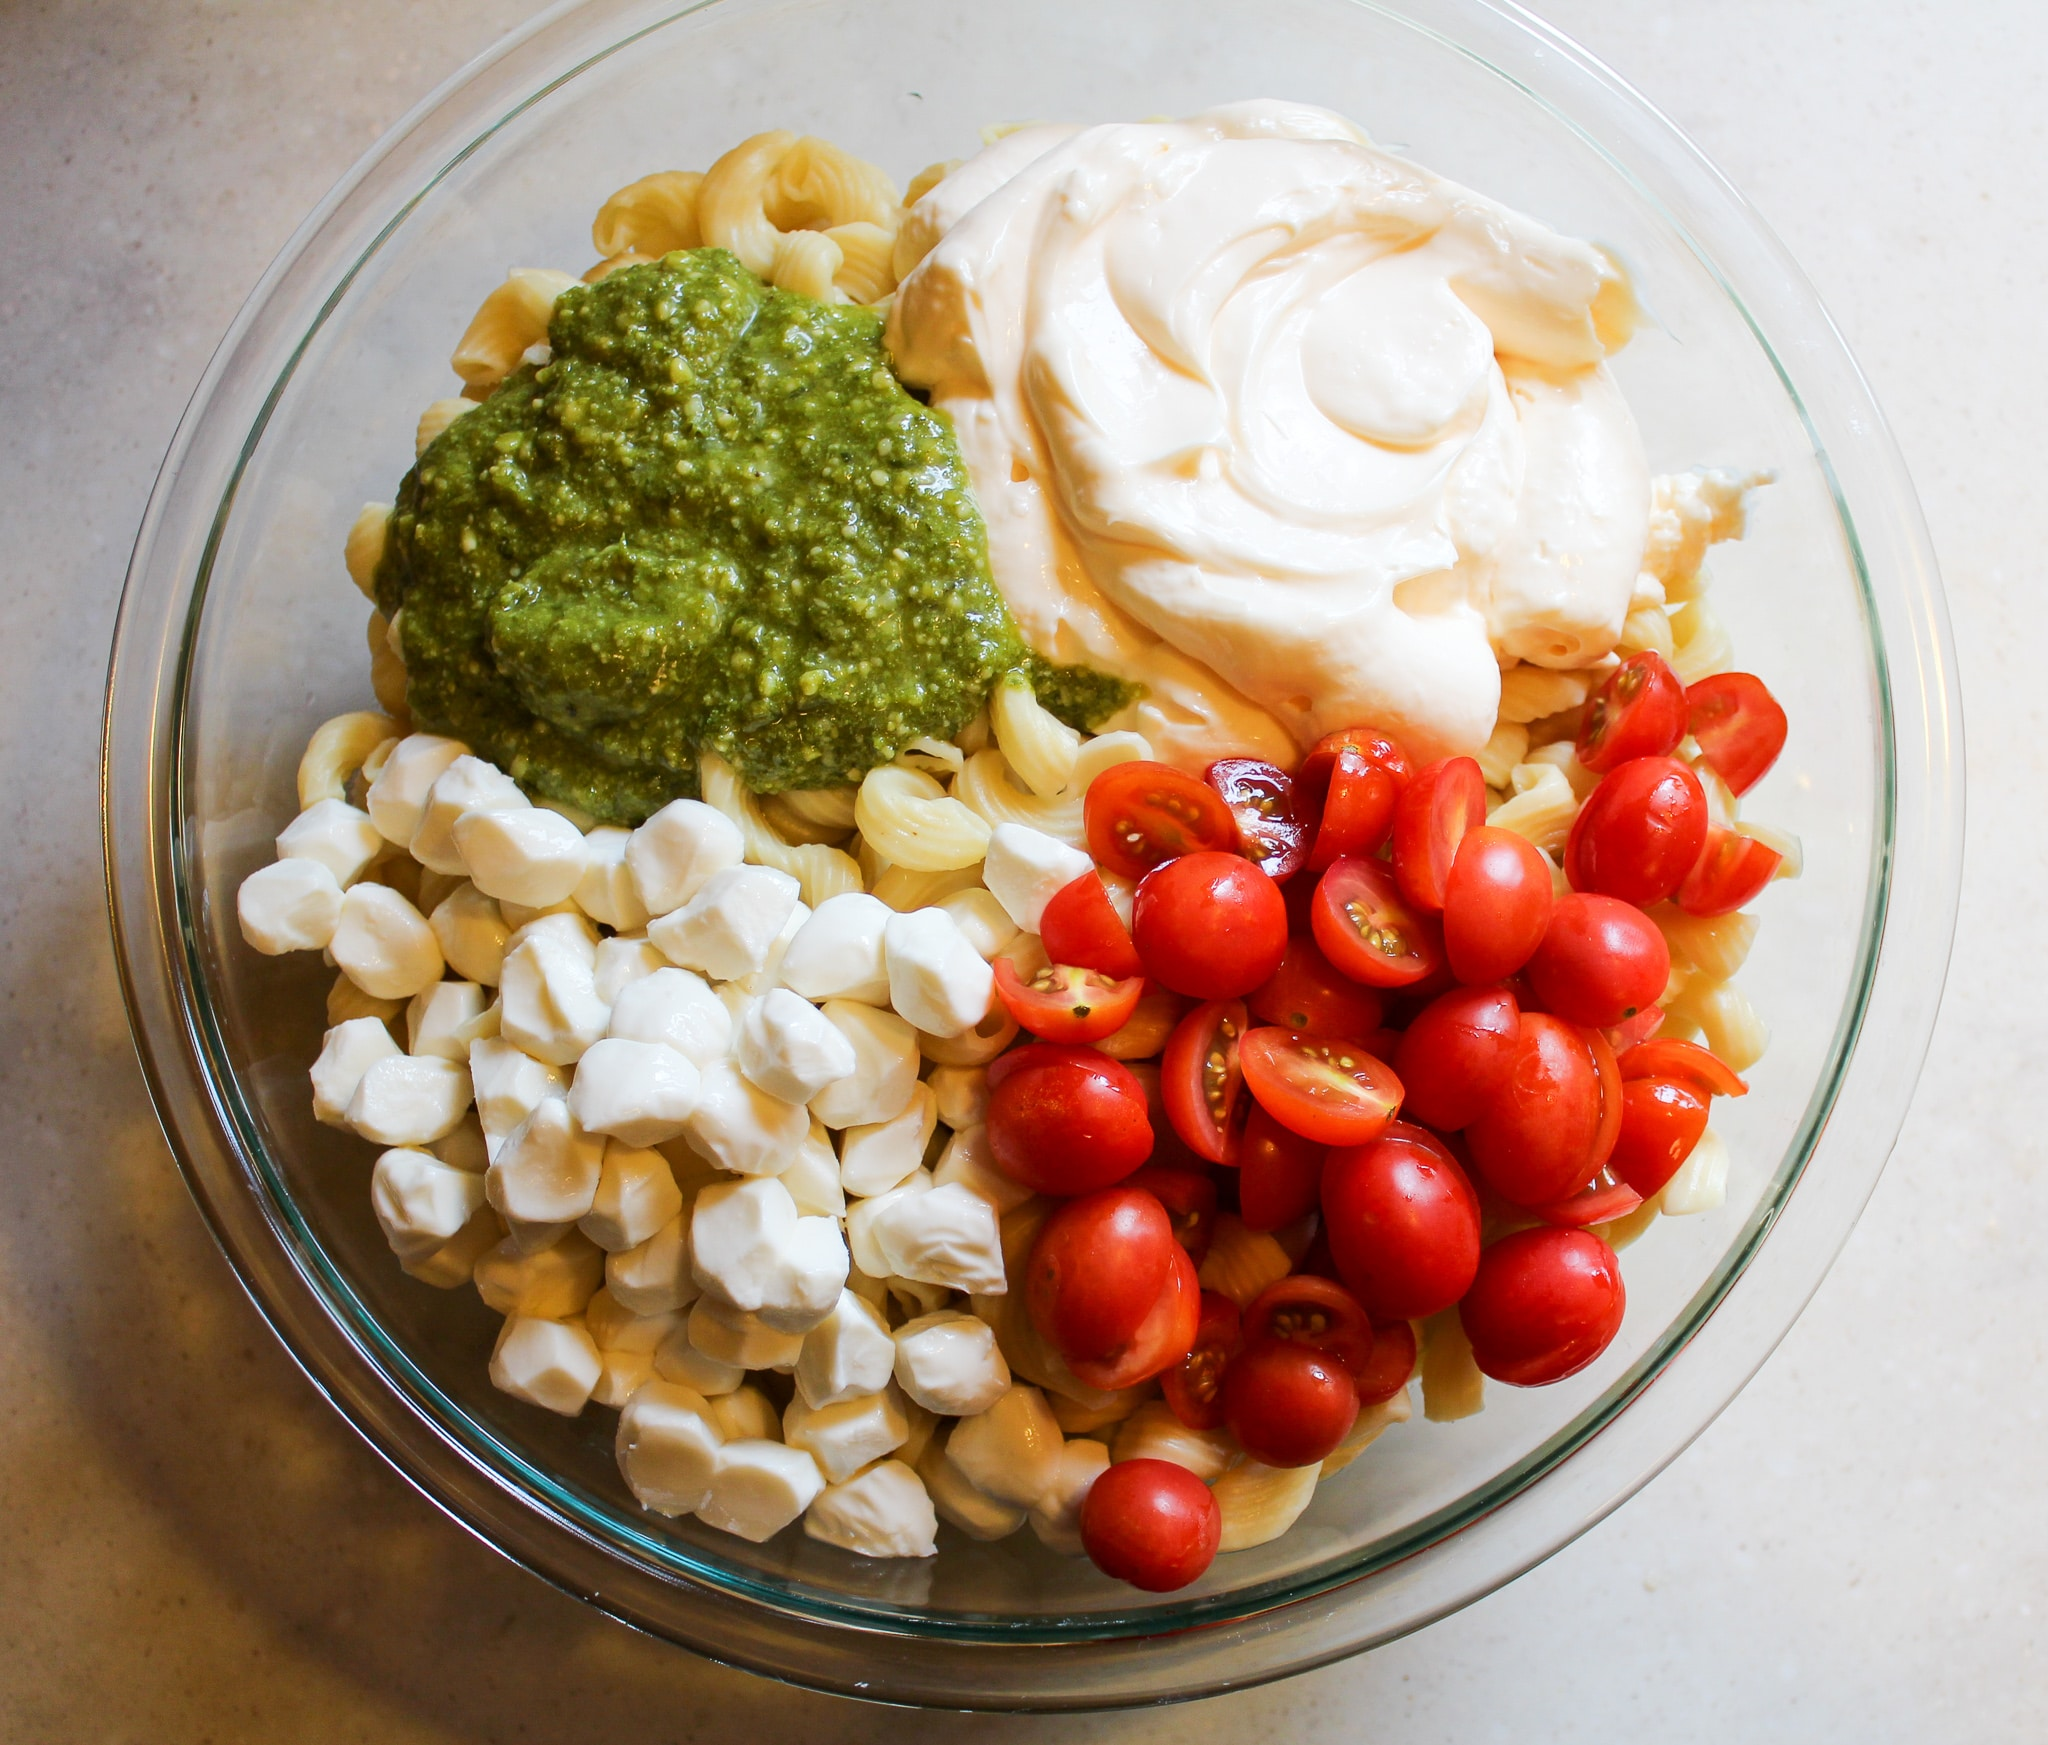 bowl of plain noodles with mayo, pesto, cheese, and tomatoes